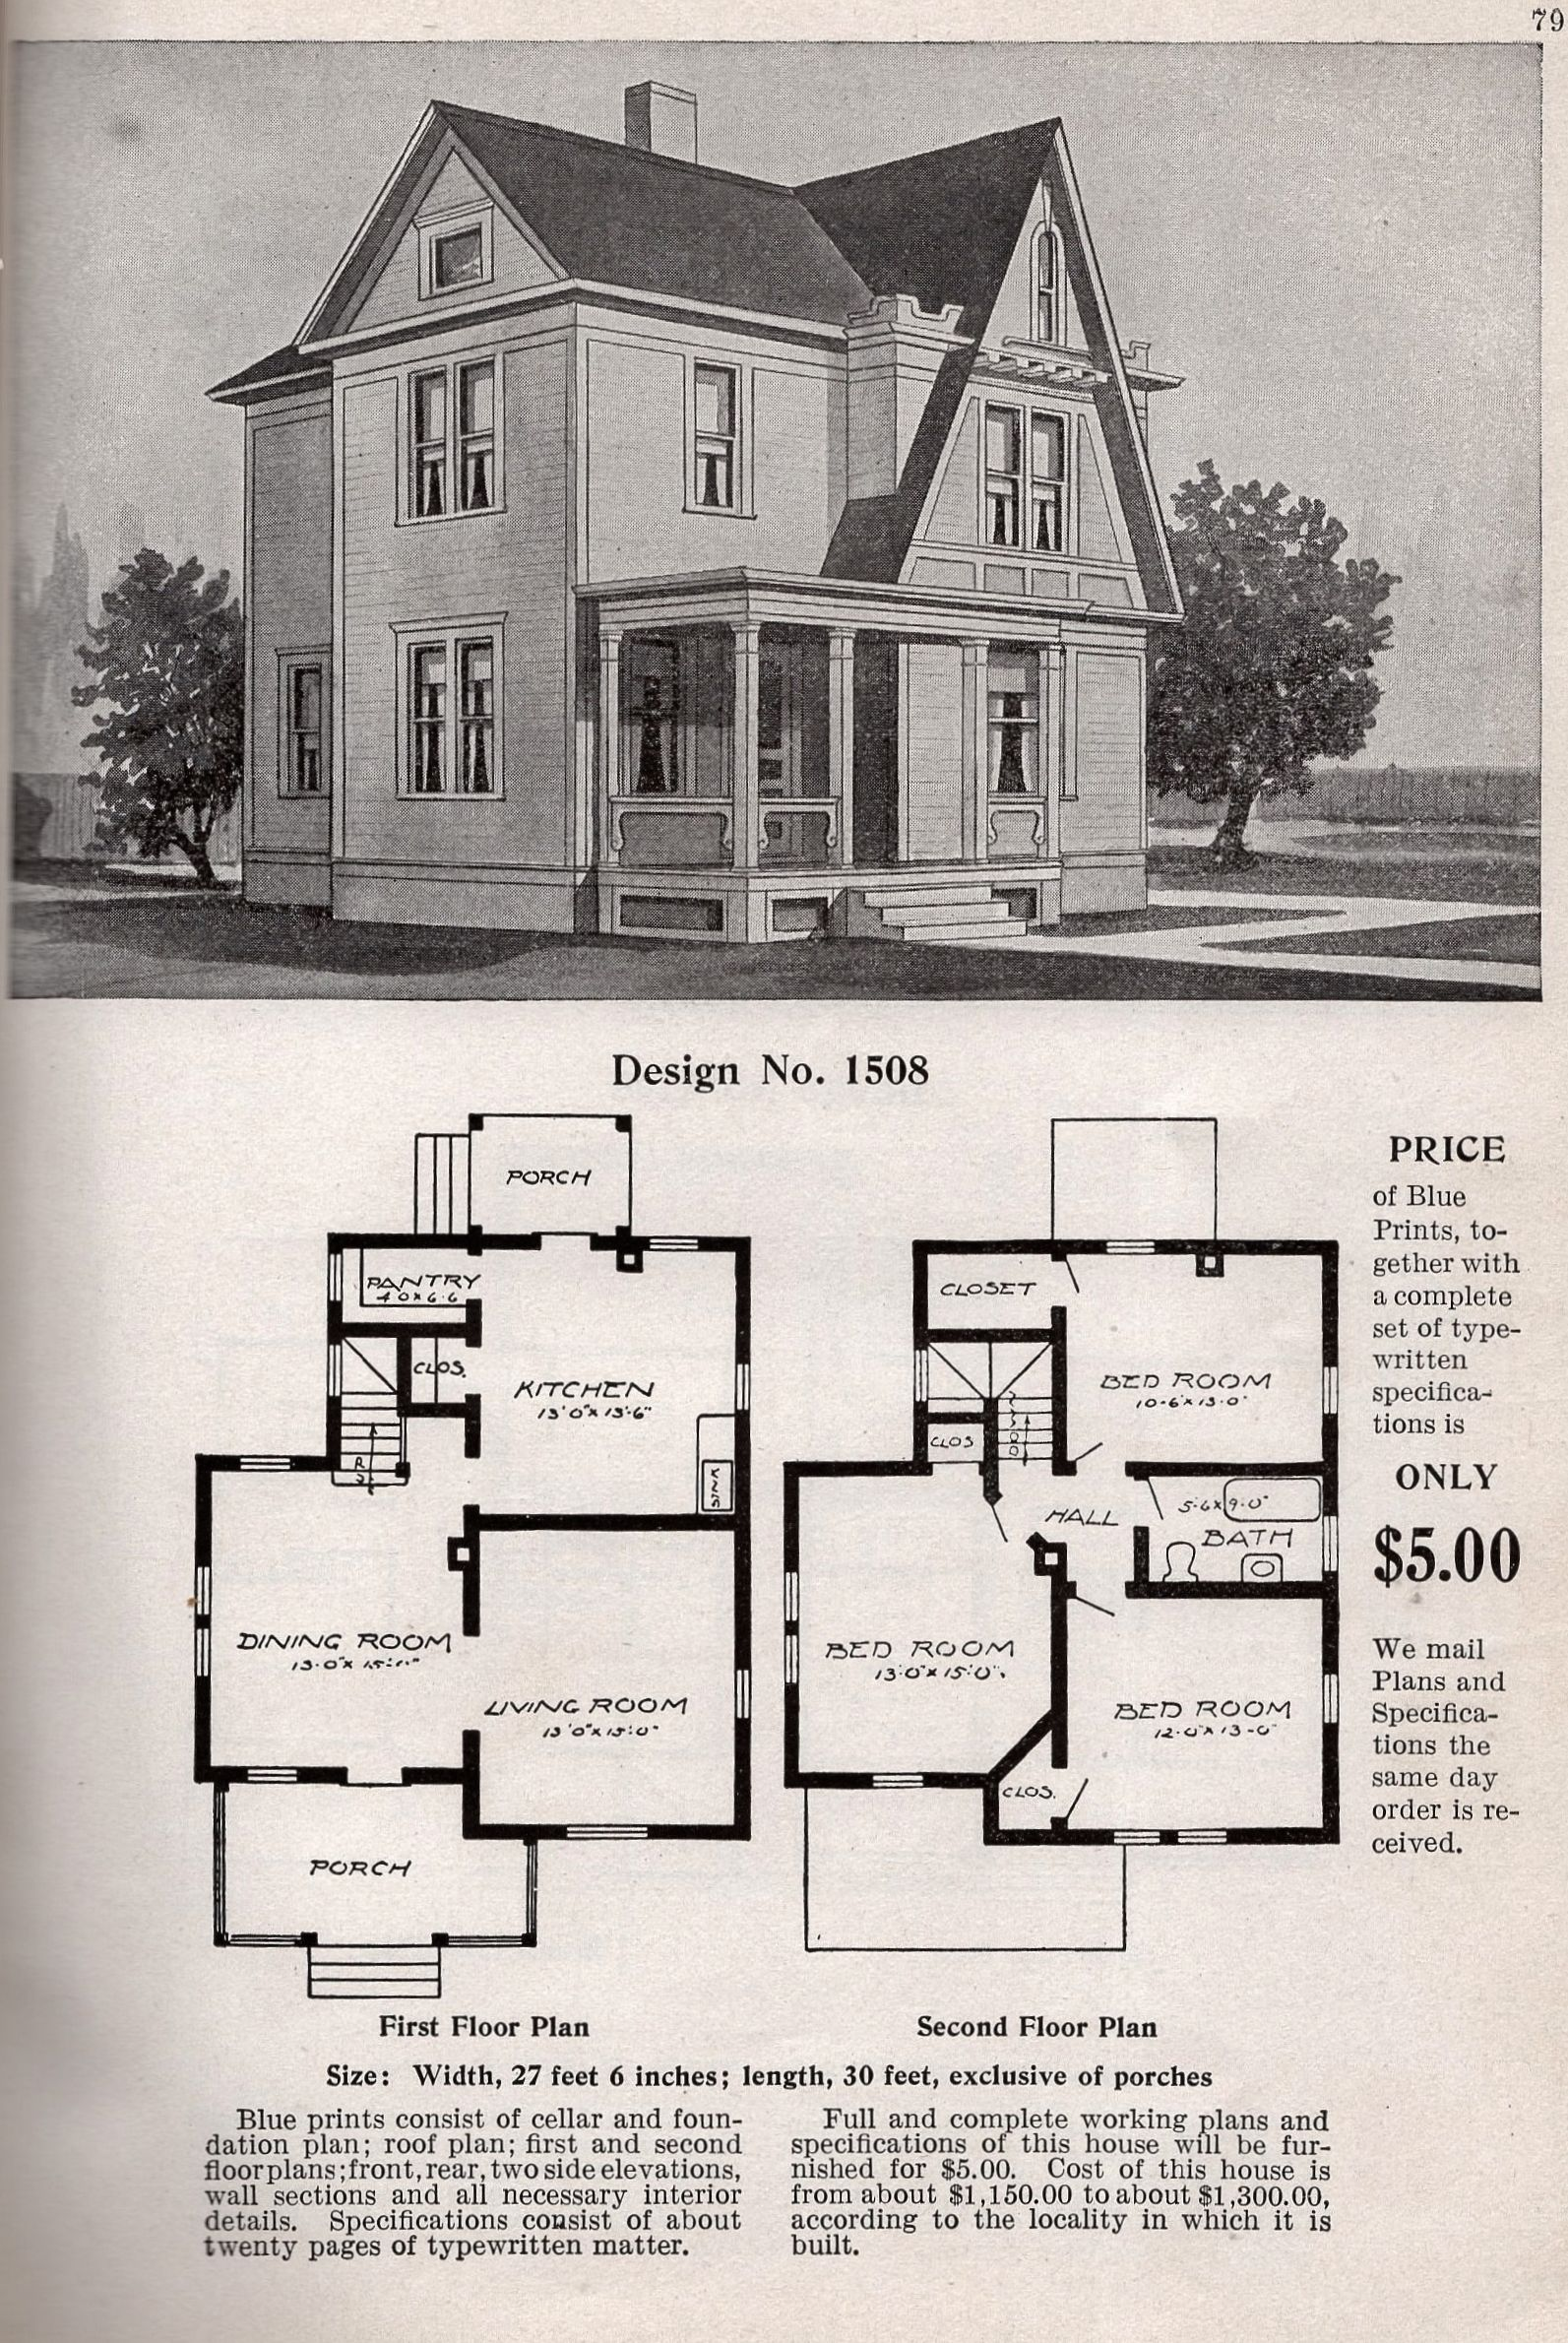 Heres The Entire Page Showing The Floor Plan Of The Radford 1508 House Plans Farmhouse Floor Plans How To Plan